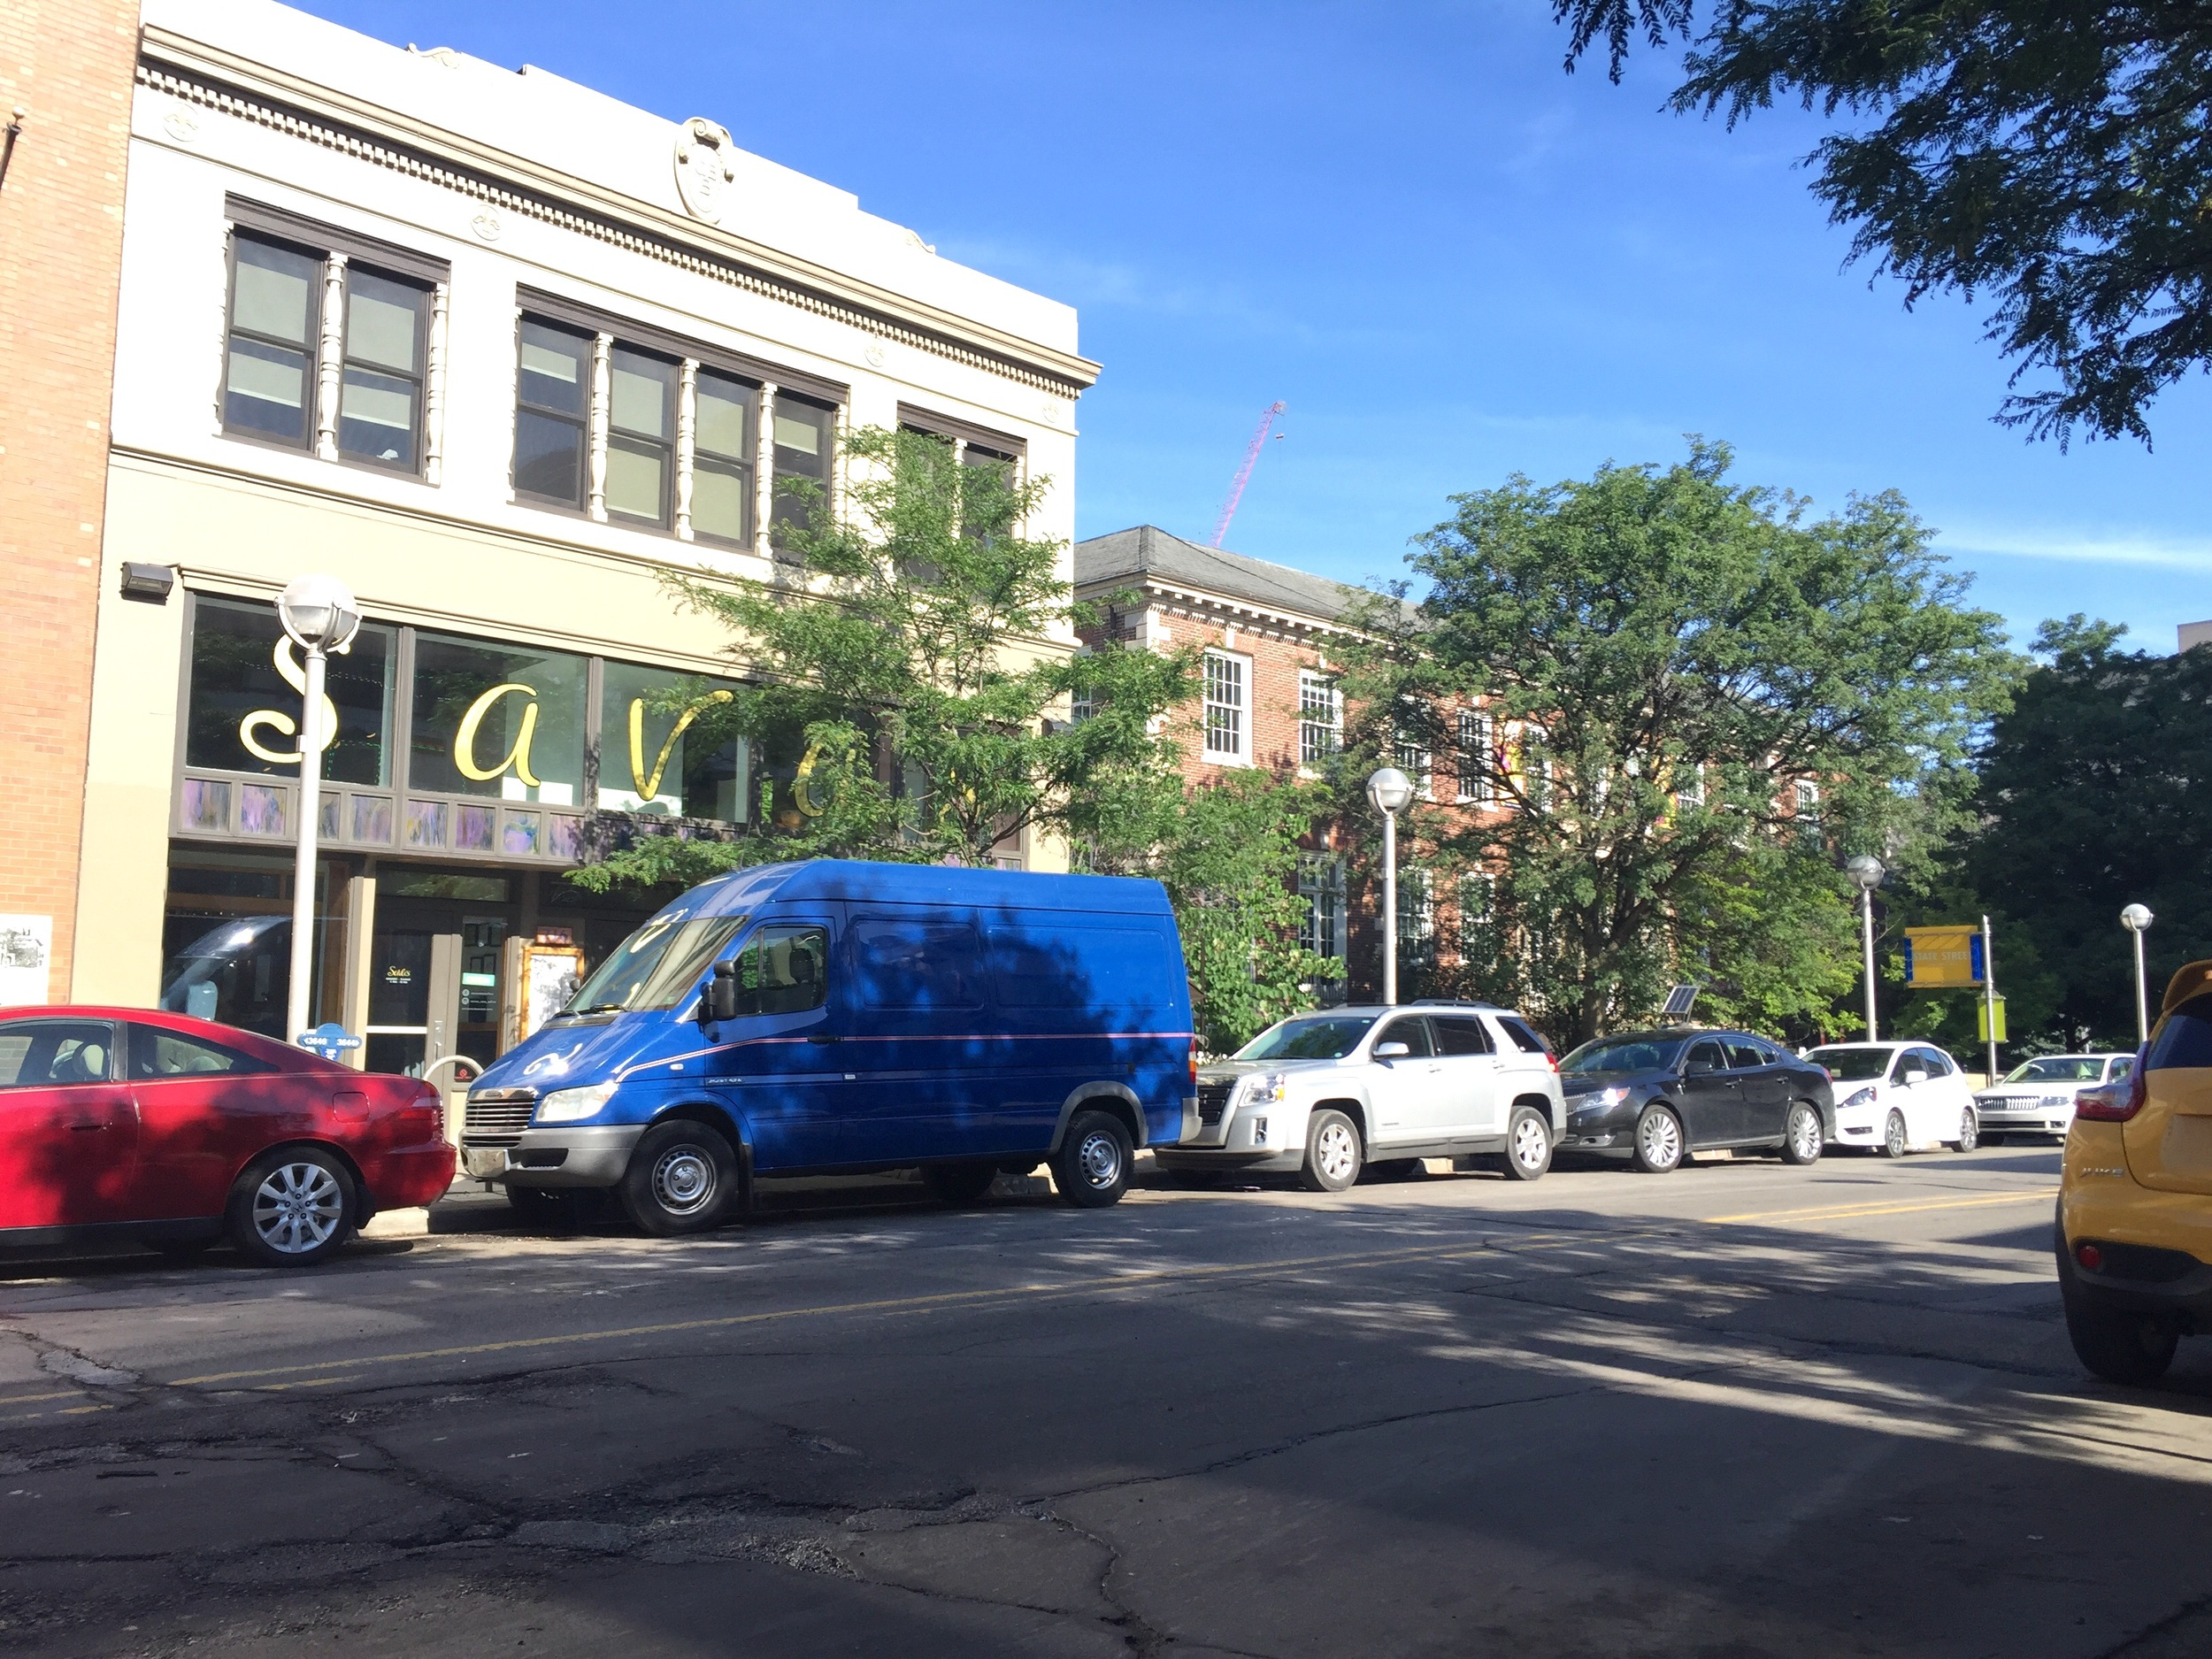 Parallel parked on the mean streets of Ann Arbor, Michigan